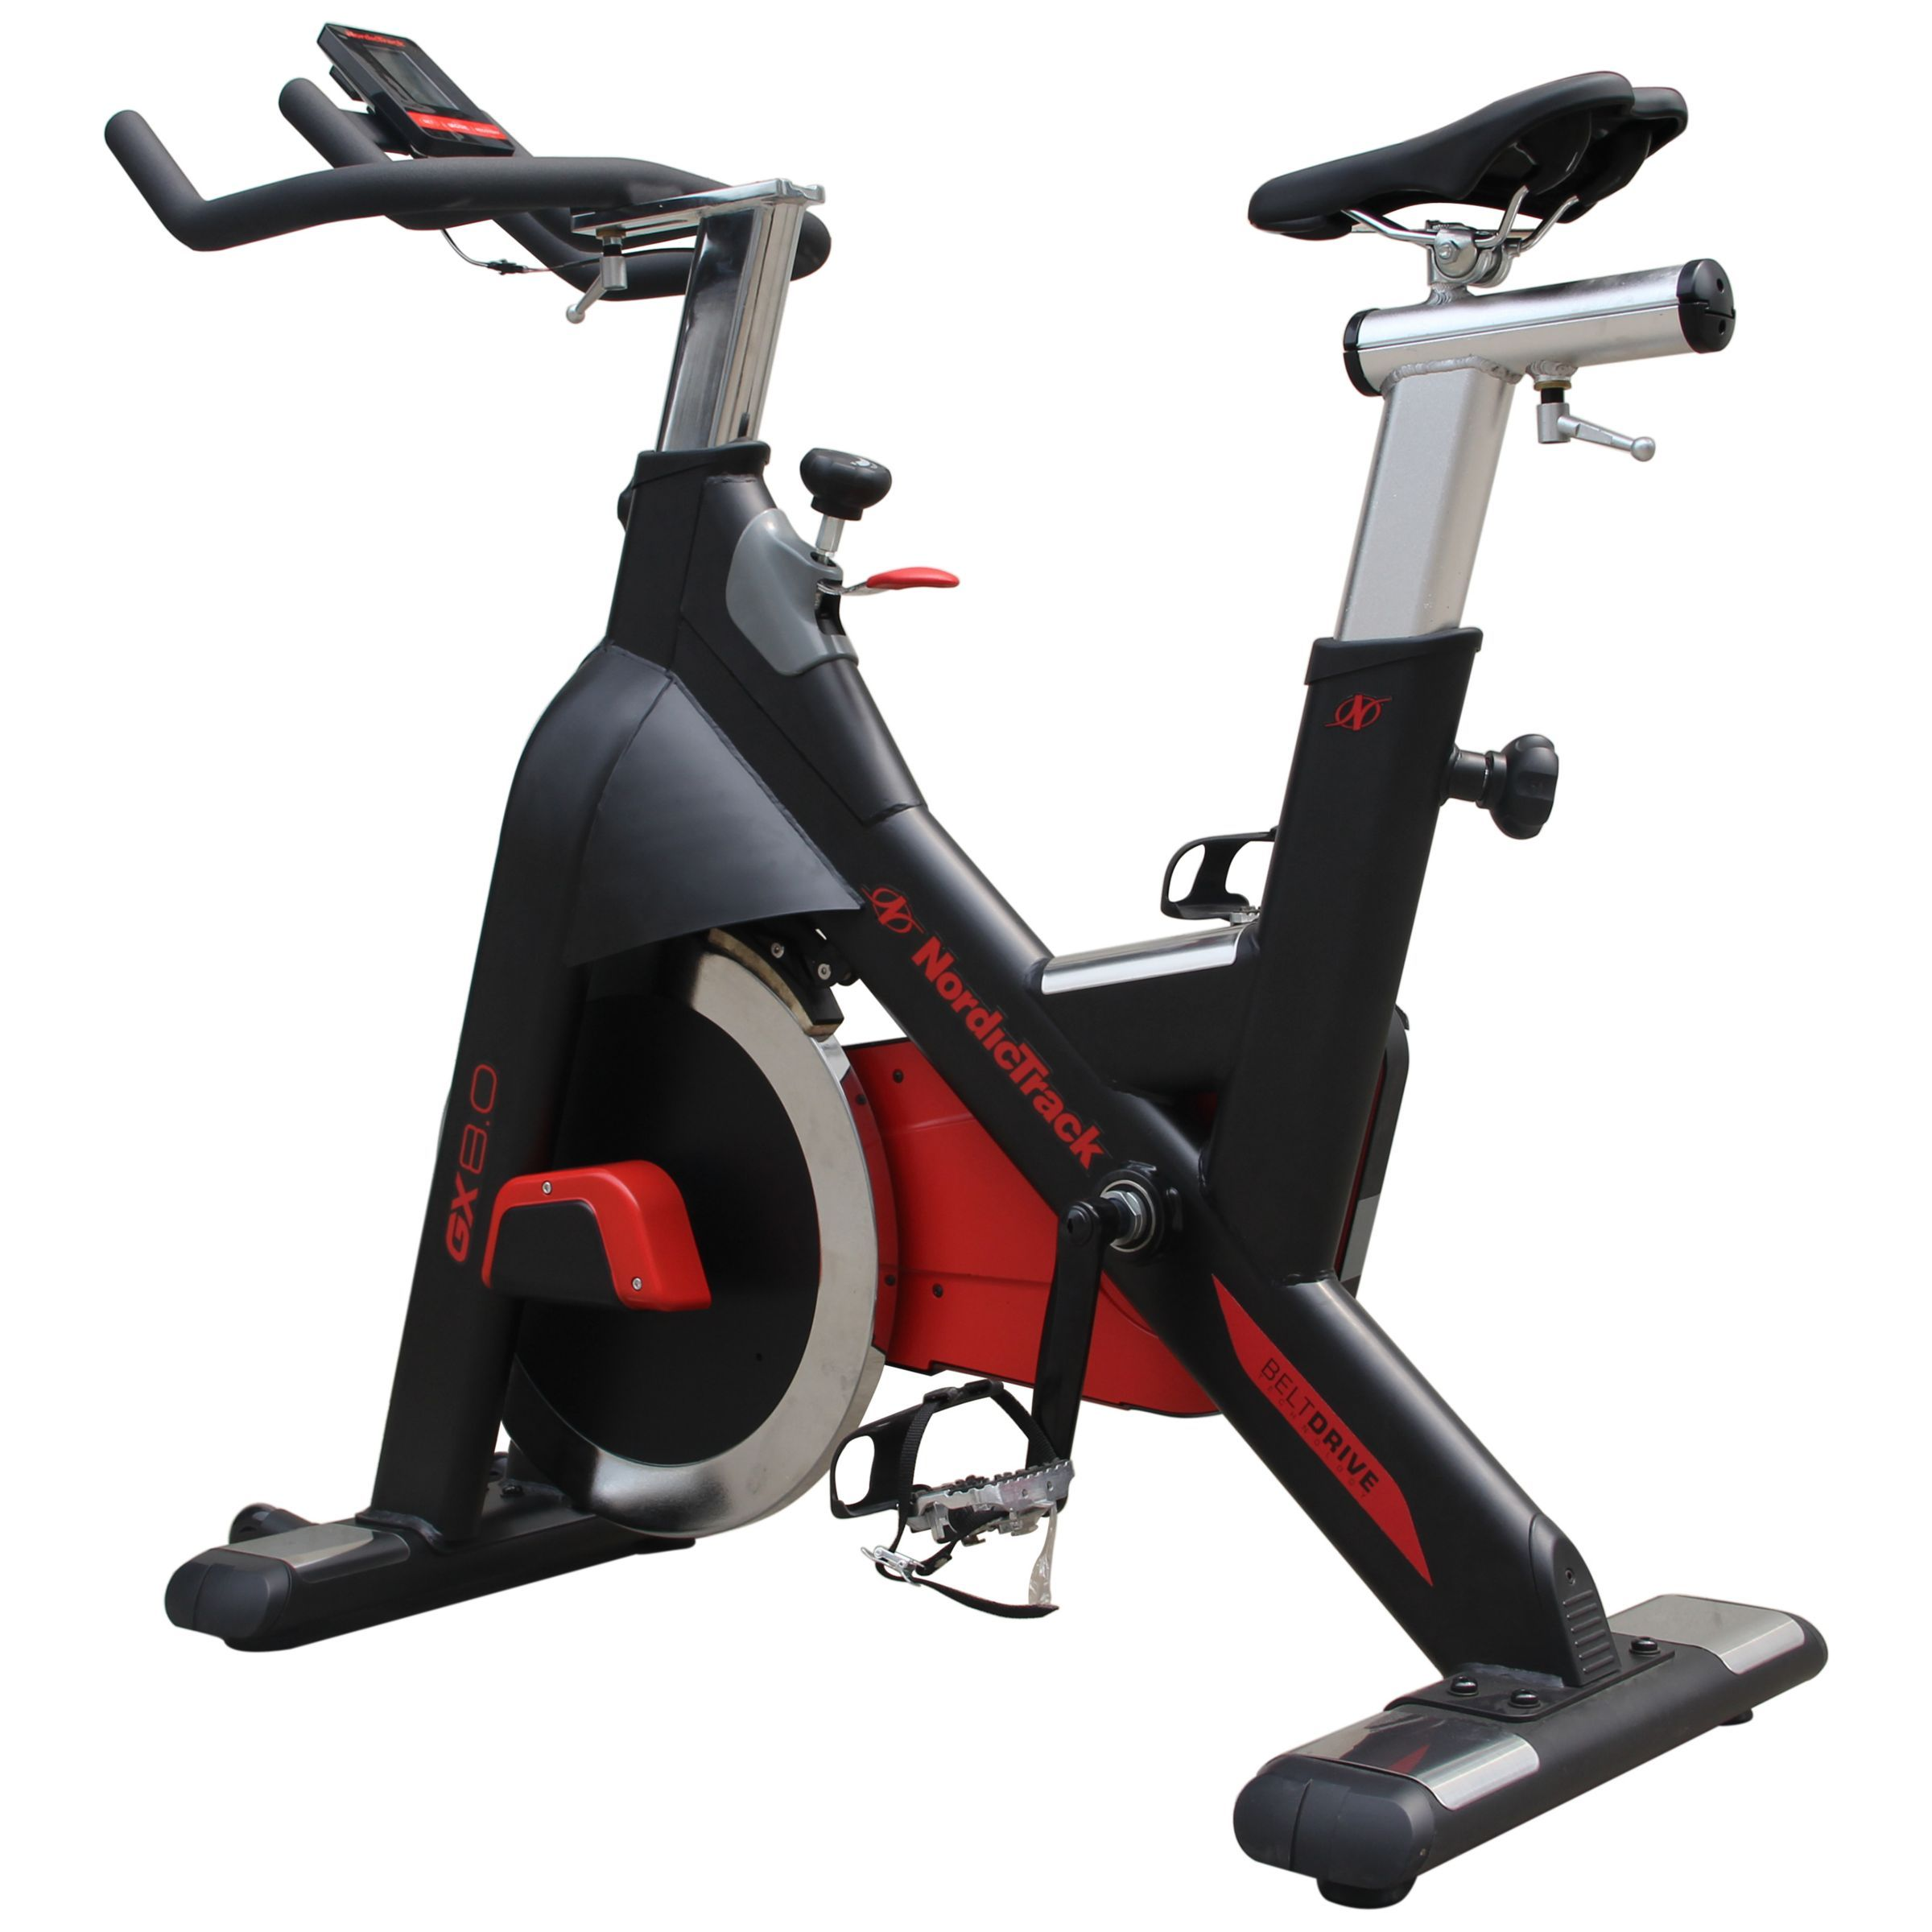 Nordictrack Gx 8 0 Indoor Studio Bike Best Exercise Bike Exercise Bike For Sale Cycling Workout